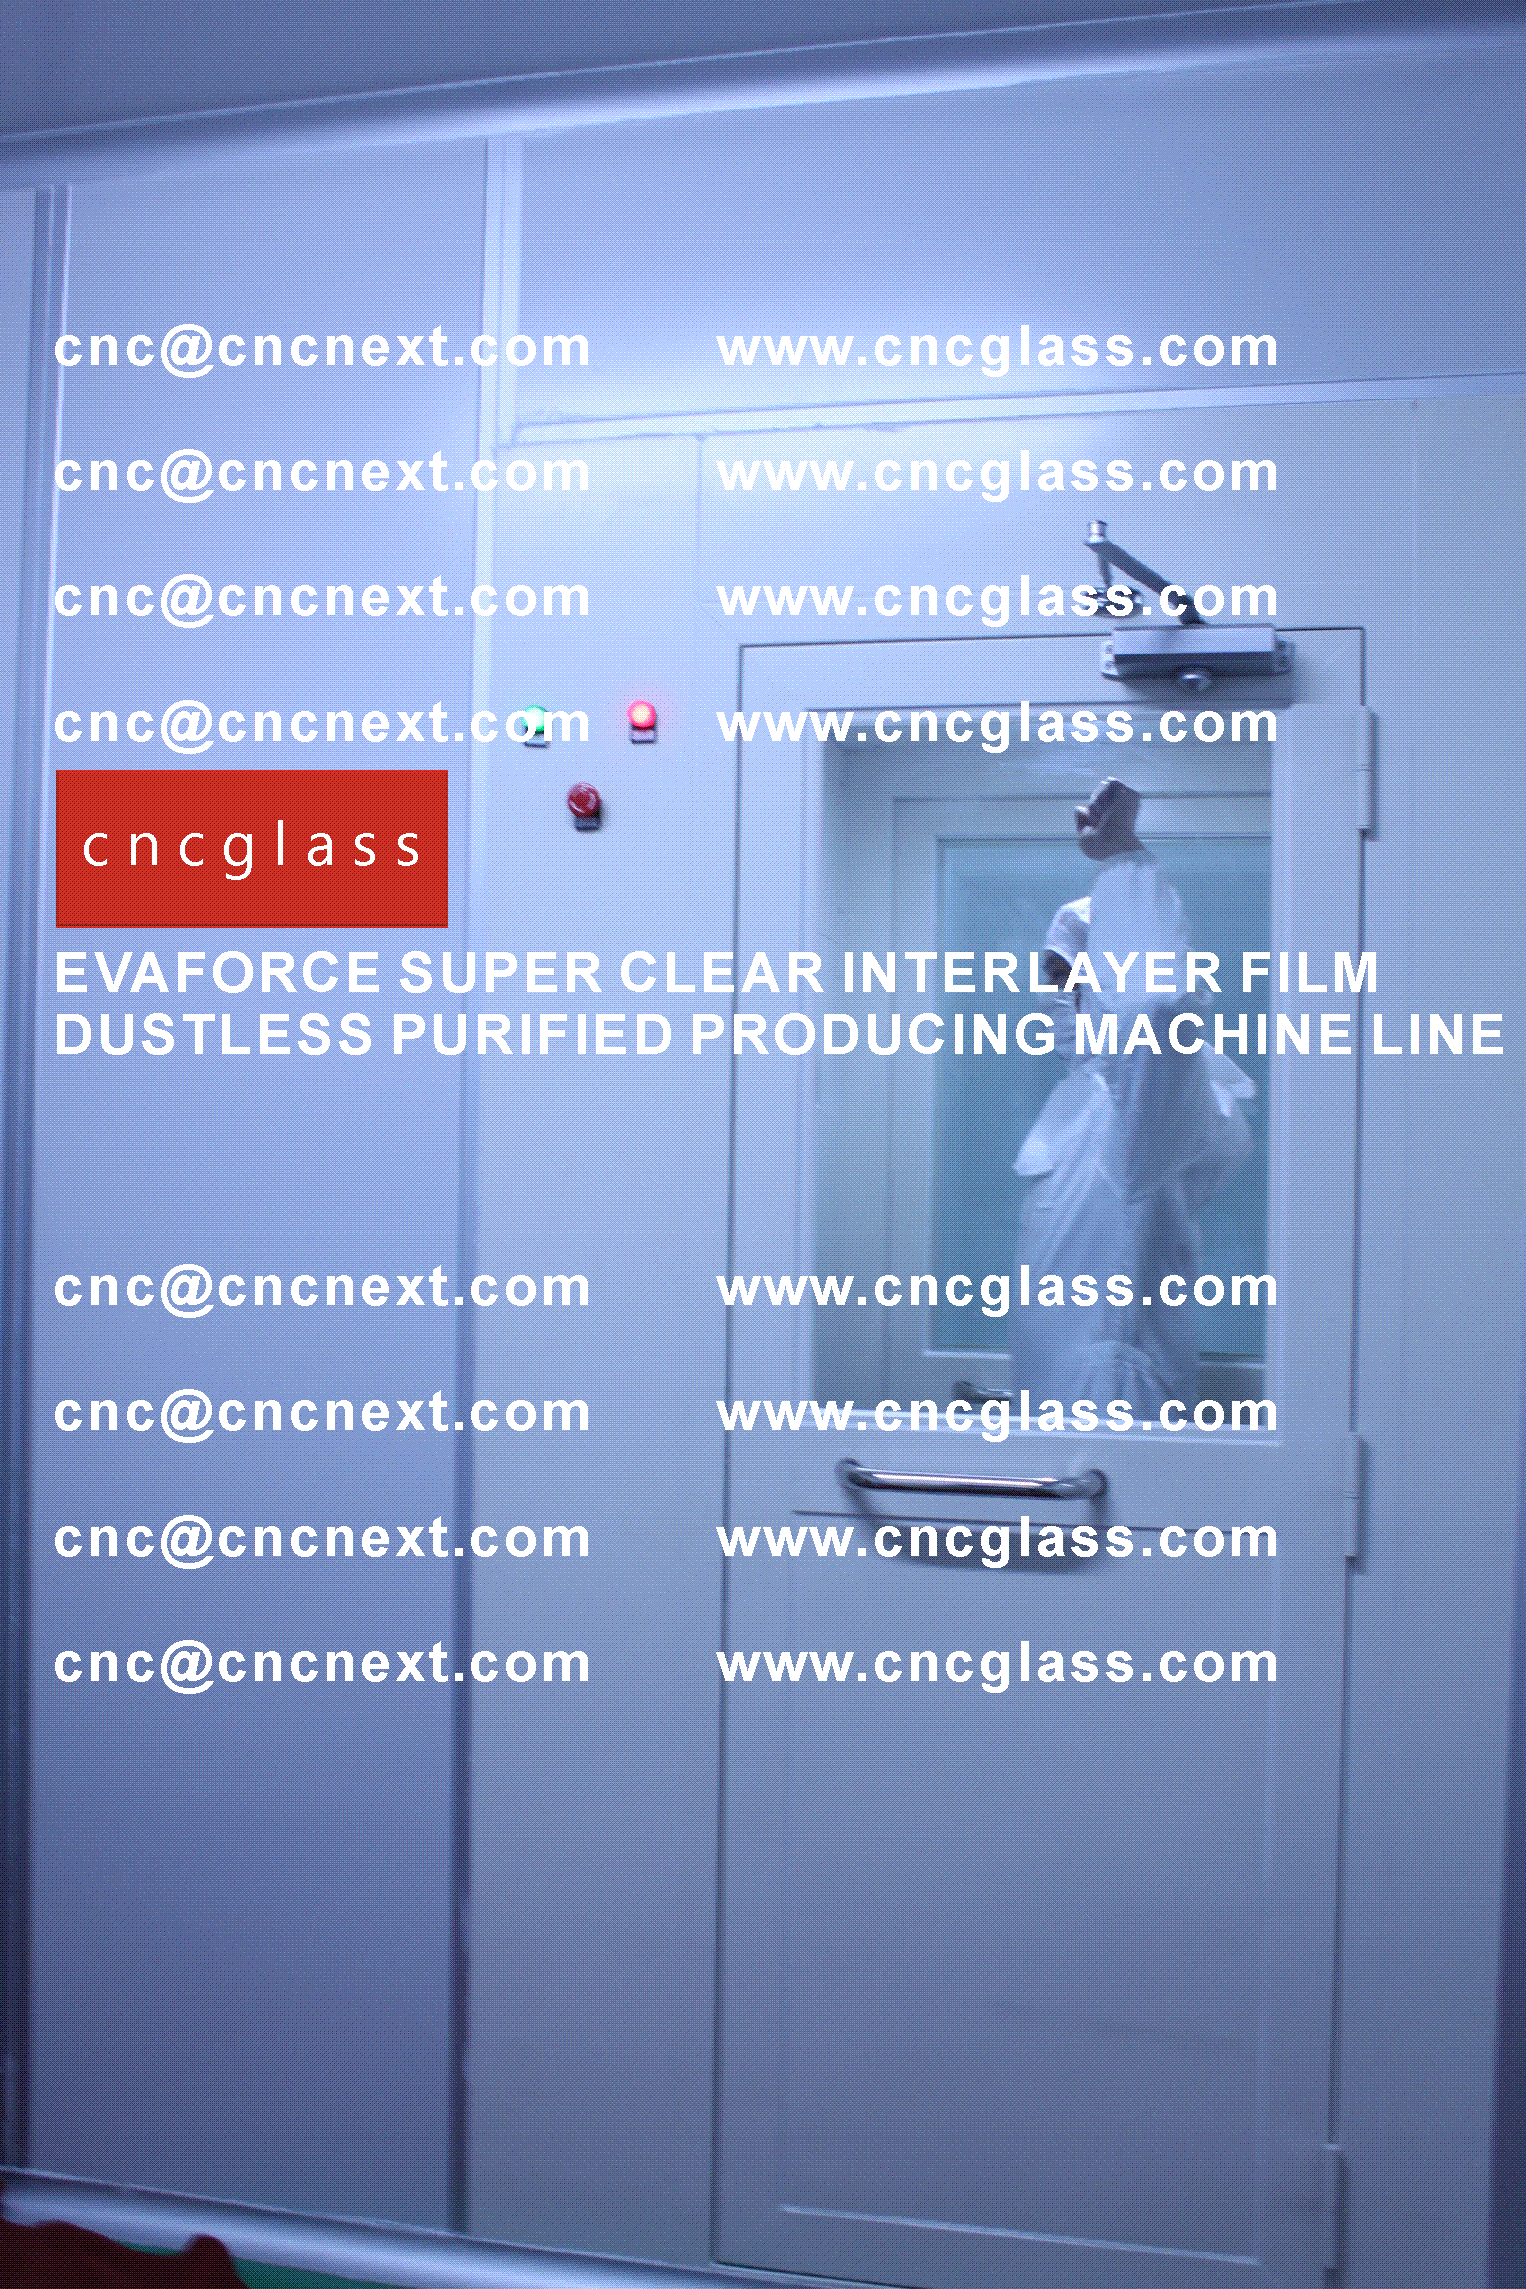 005 EVAFORCE SUPER CLEAR INTERLAYER FILM PRODUCING MACHINE LINE